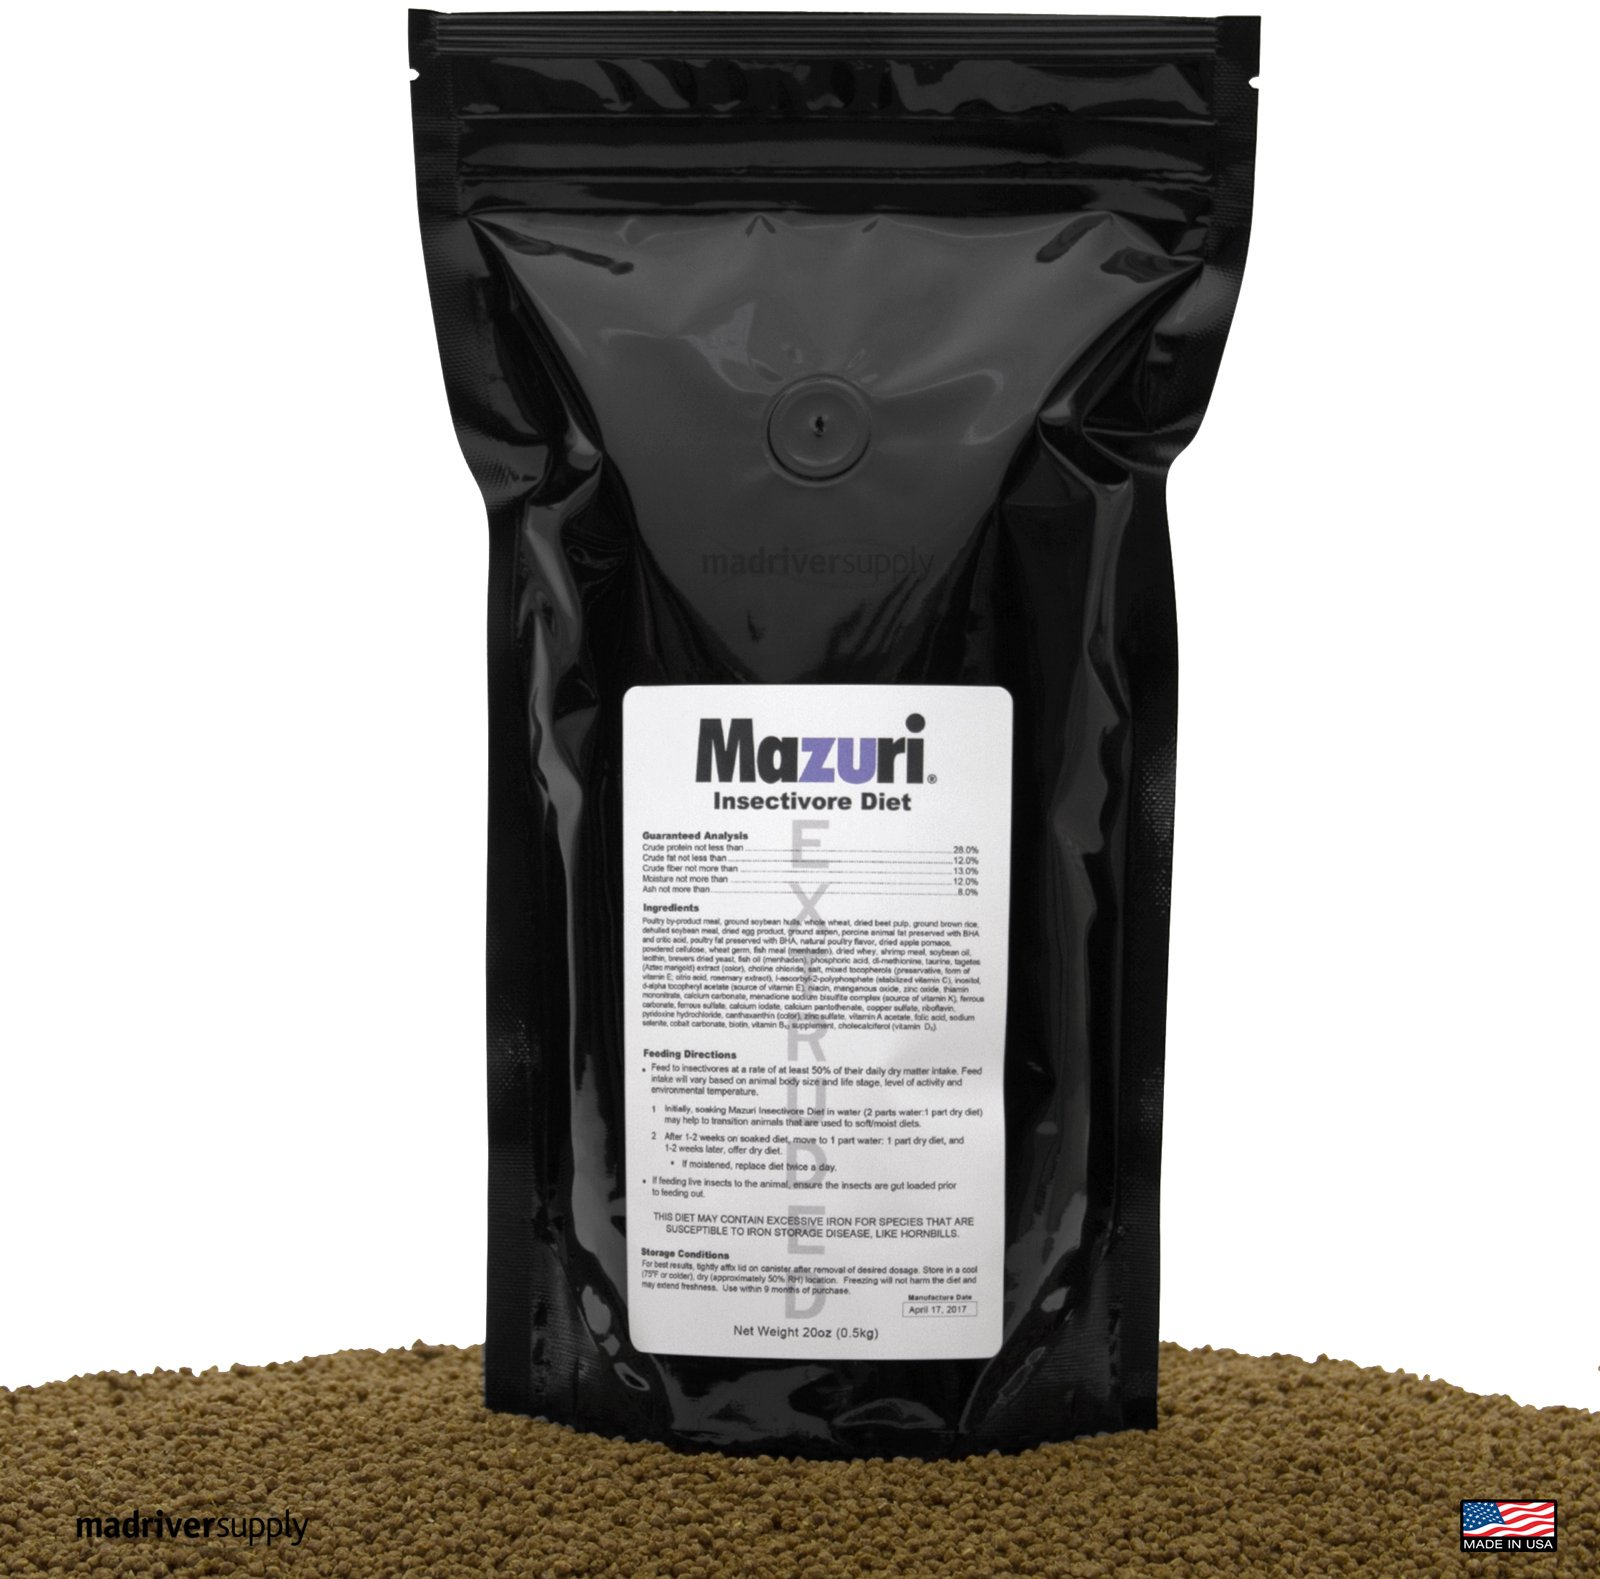 Mazuri Insectivore Diet, Designed For A Range Of Insect-Eating Mammals, Birds, Reptiles And Amphibians (Shrews, Hedgehogs, Sugar Gliders, Anteaters, Swifts, Swallows, Bearded Dragons & More, 20oz(0.5kg) by Mazuri